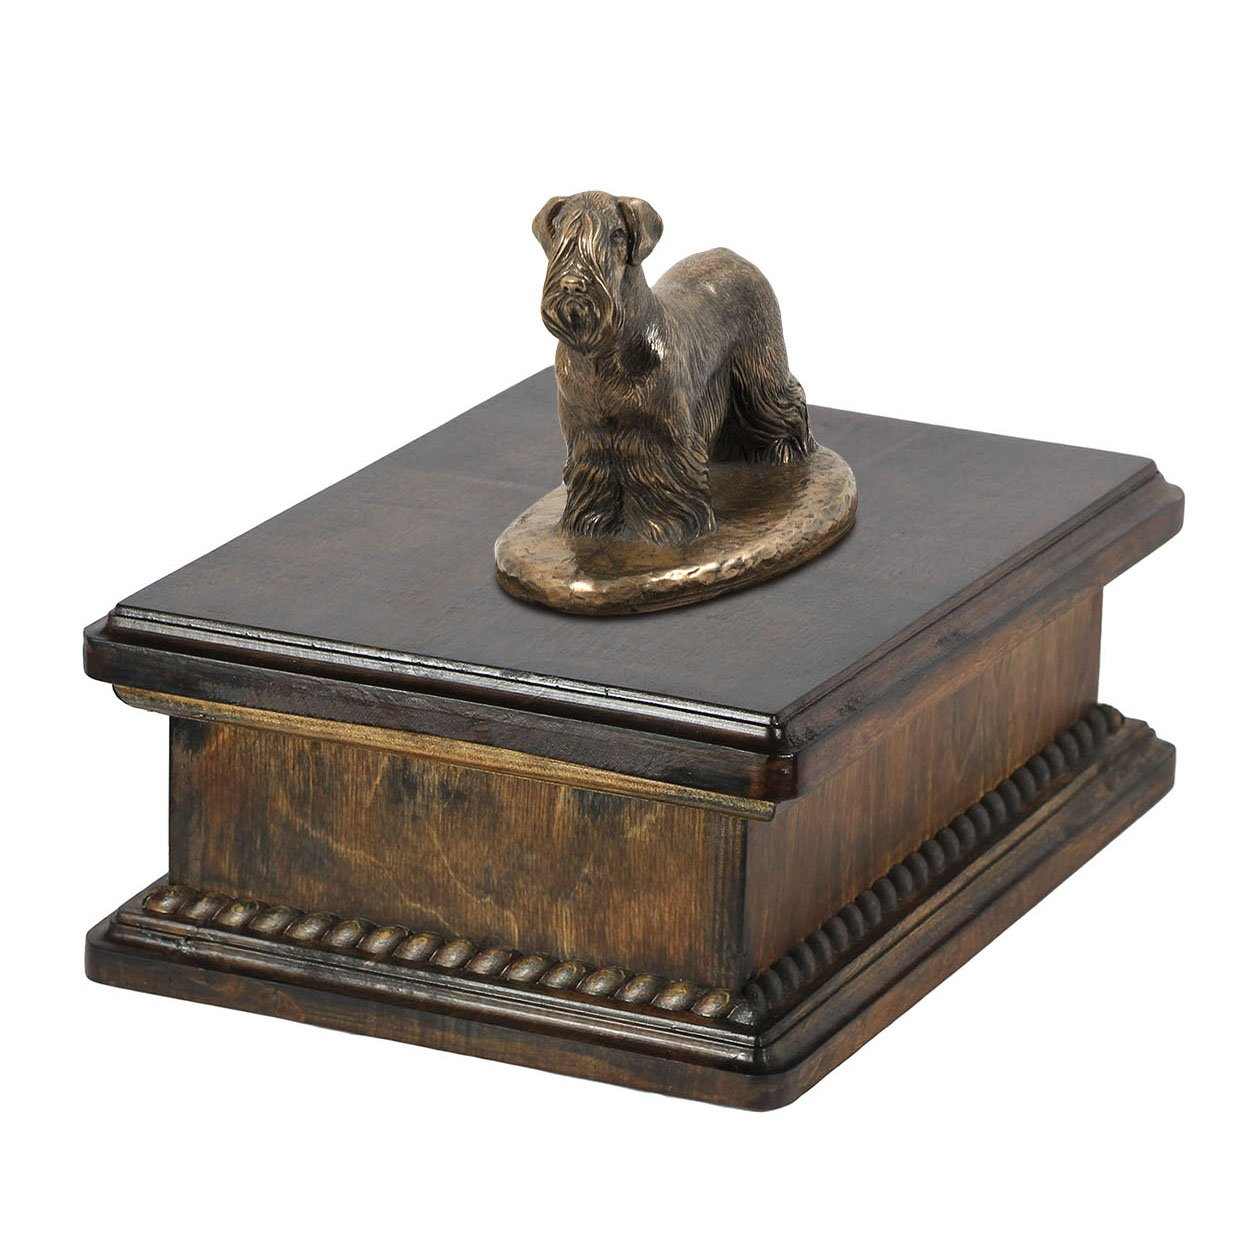 Cesky Terrier, memorial, urn for dog's ashes, with dog statue, exclusive, ArtDog